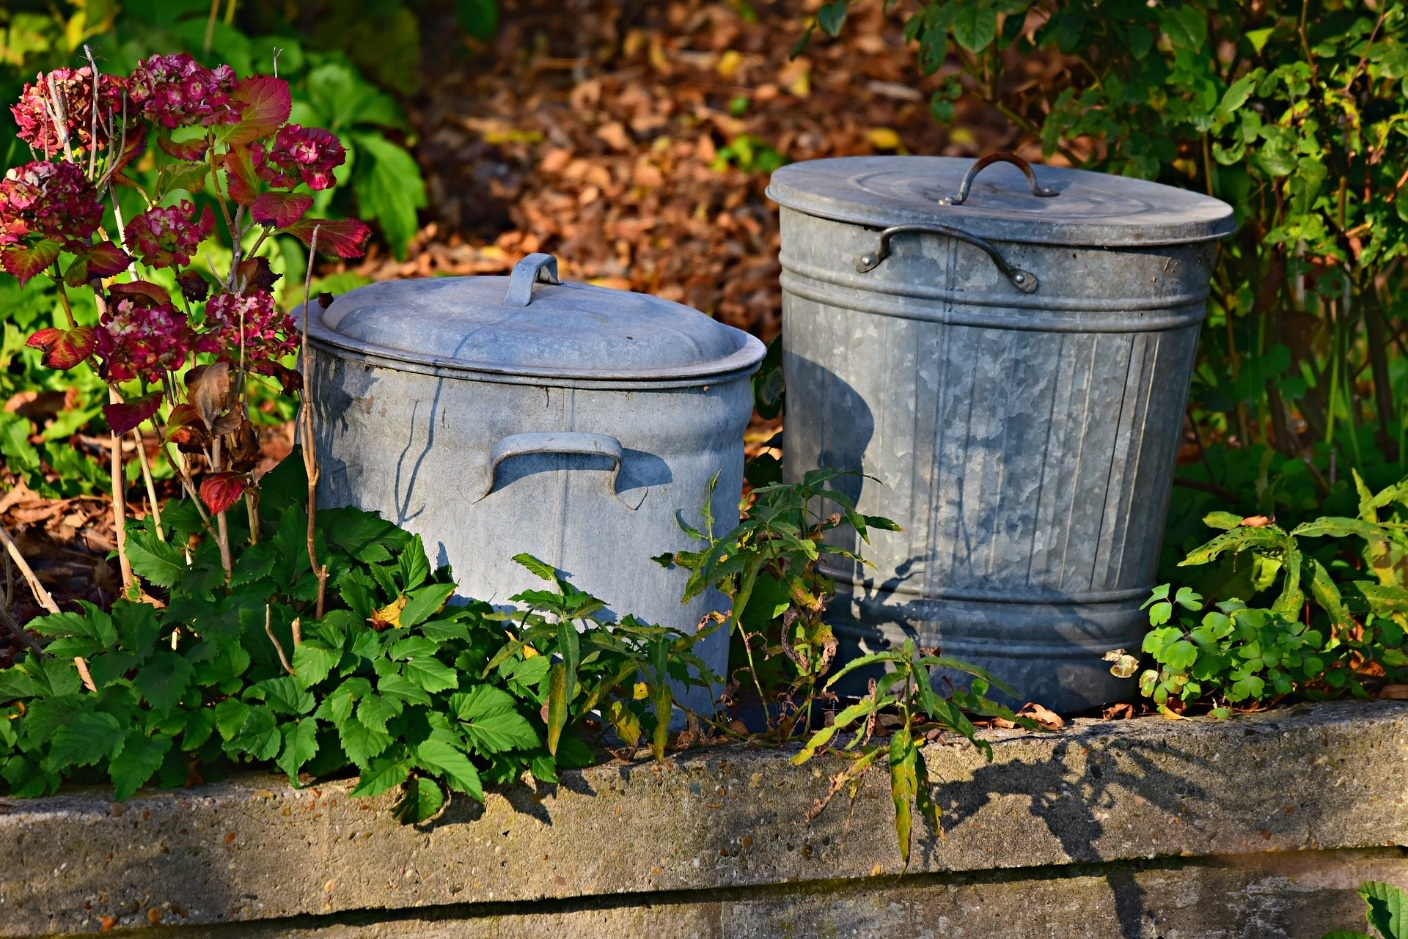 How to Recycle Your Waste at Home